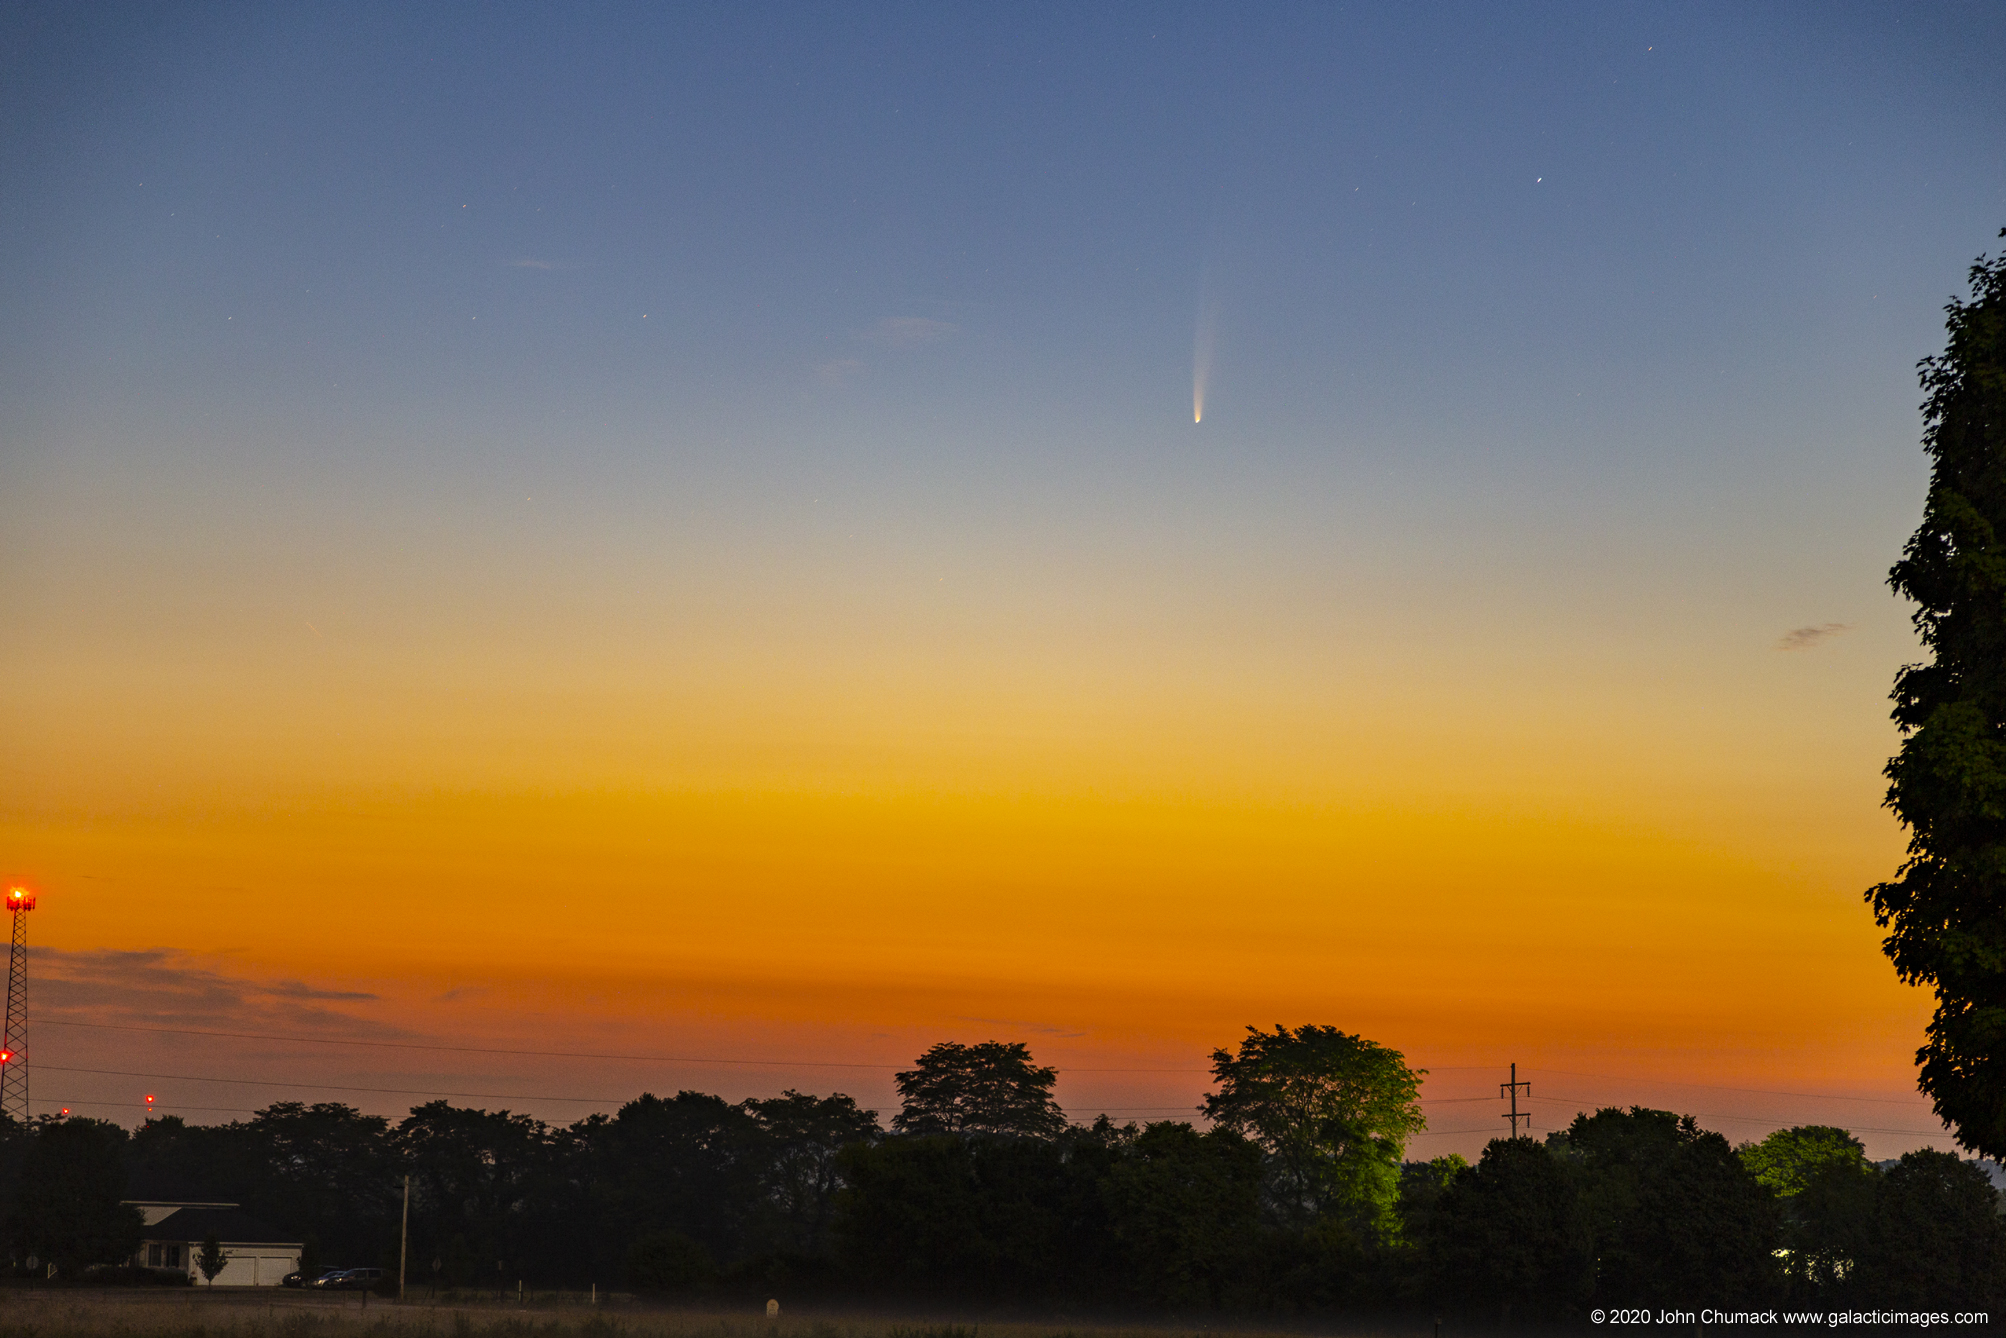 Comet NEOWISE on 07-08-2020